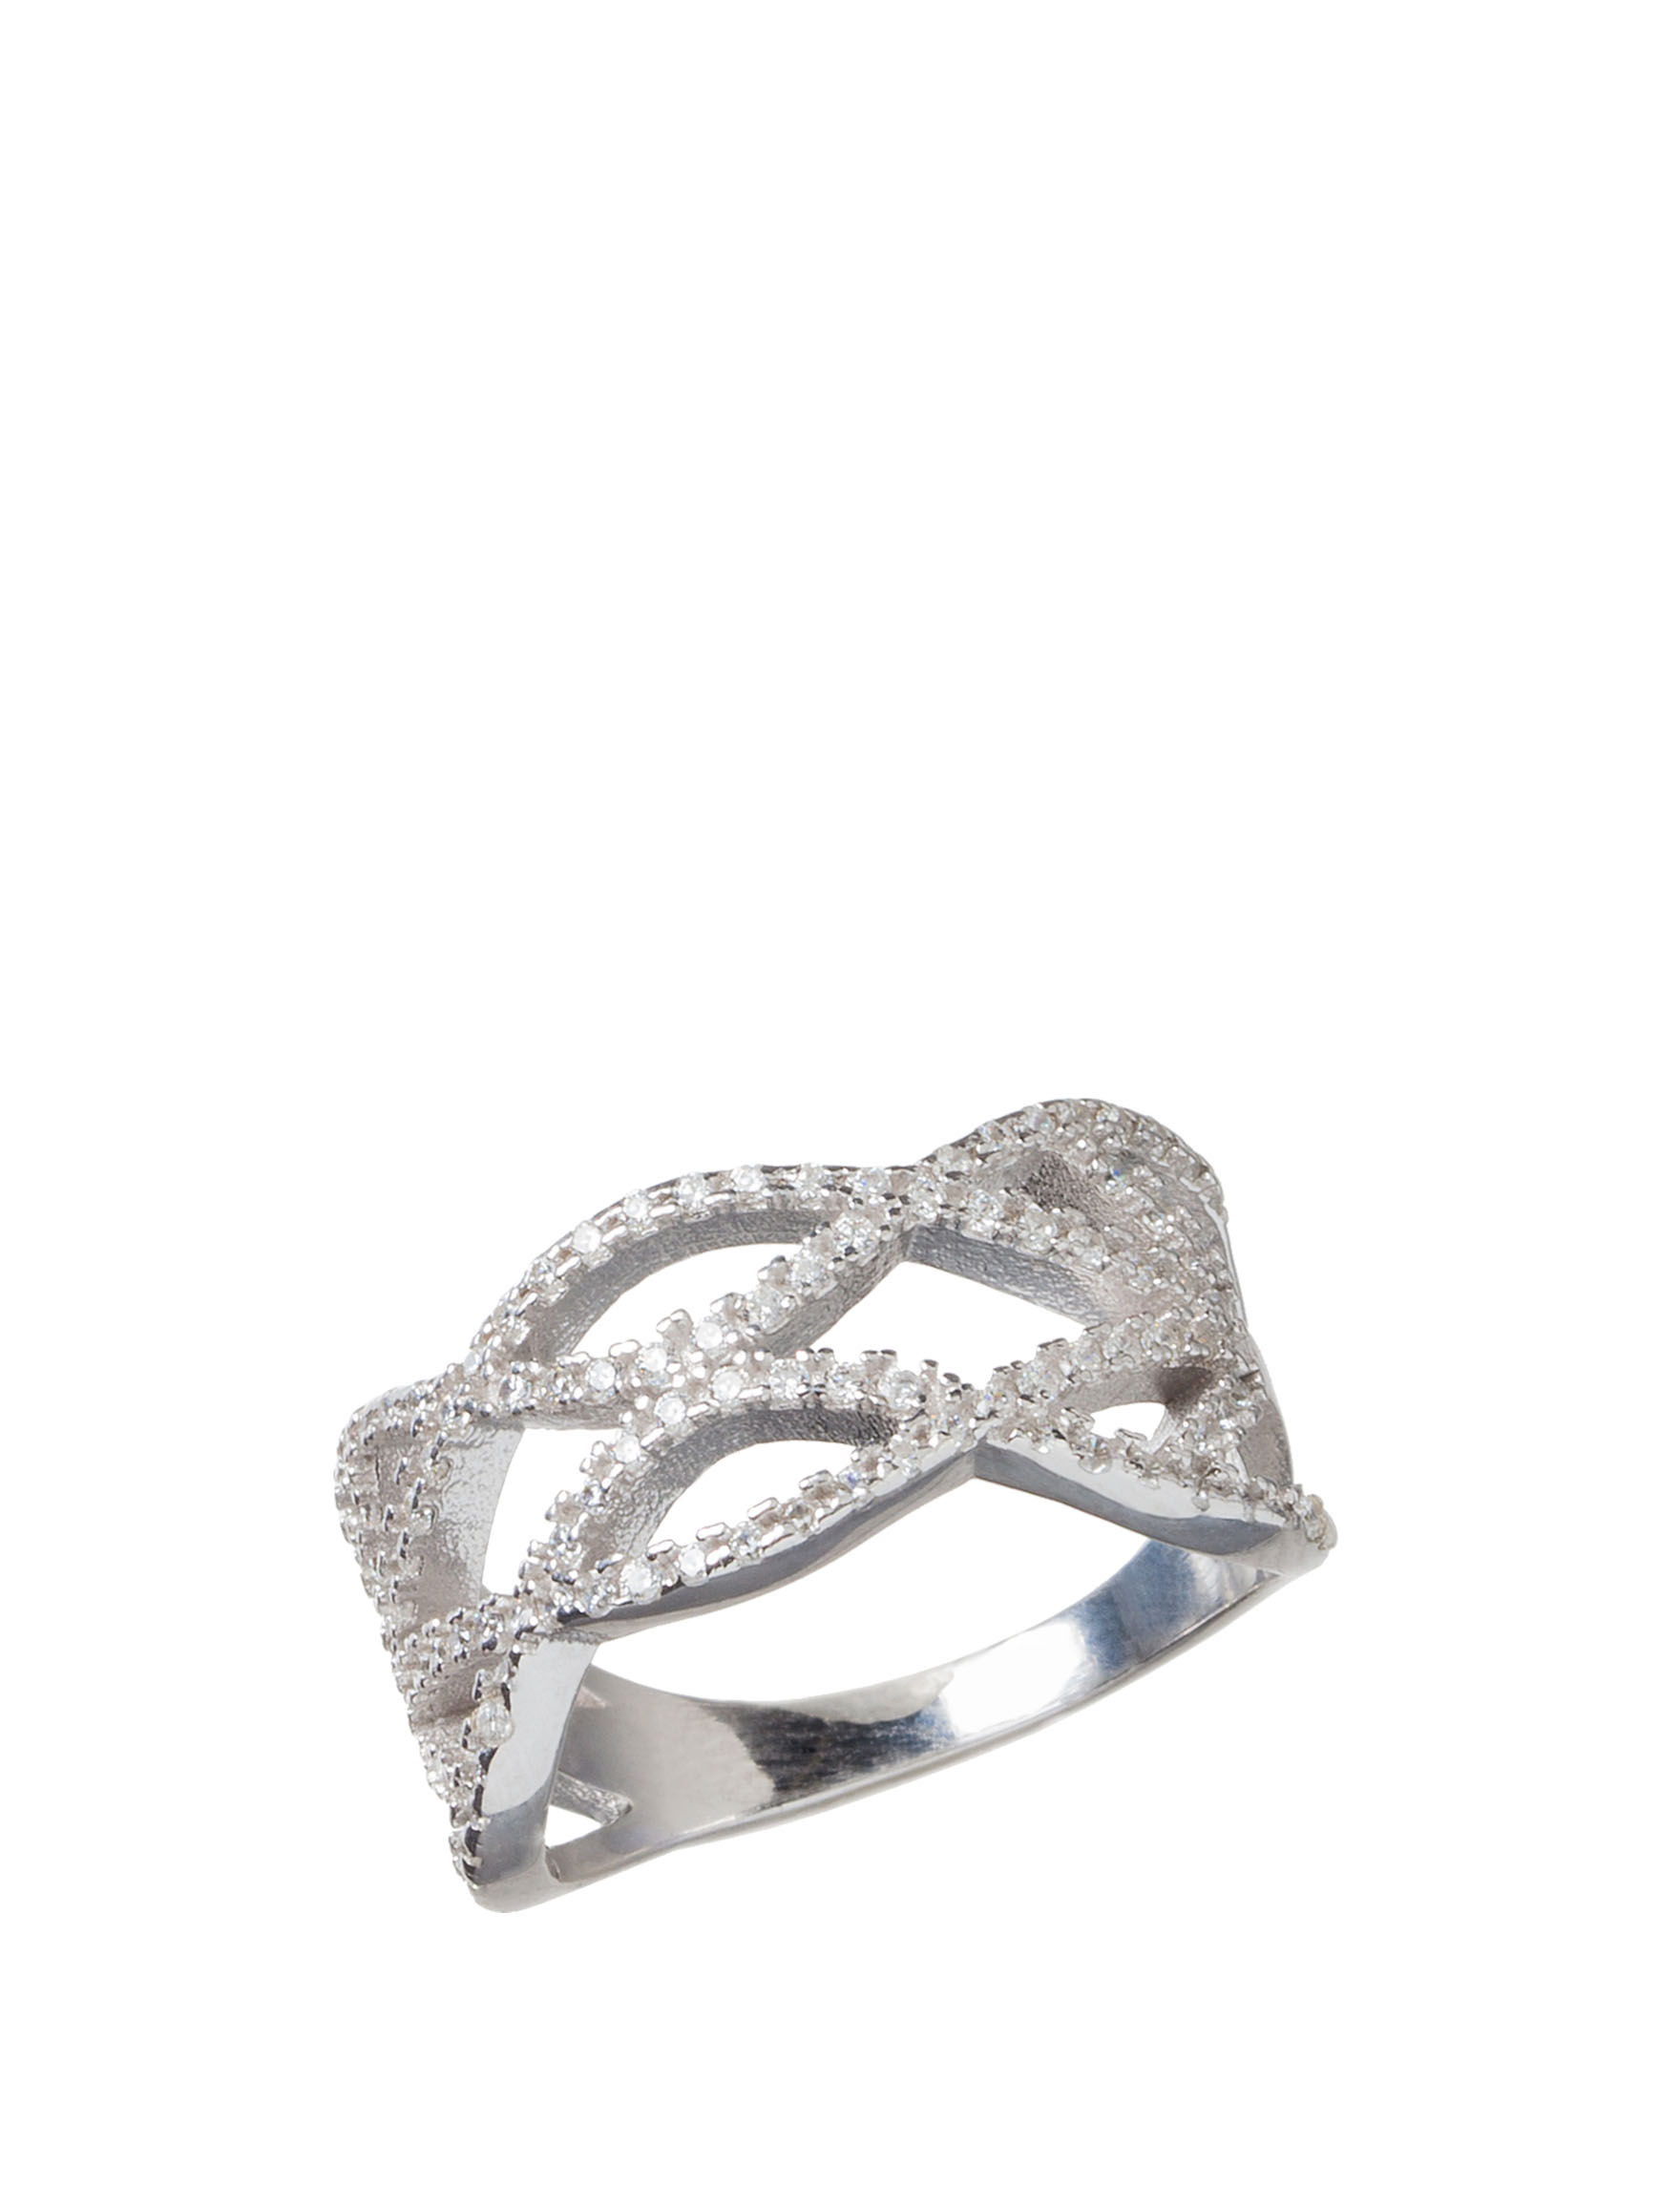 Kencraft Silver / Crystal Rings Fine Jewelry